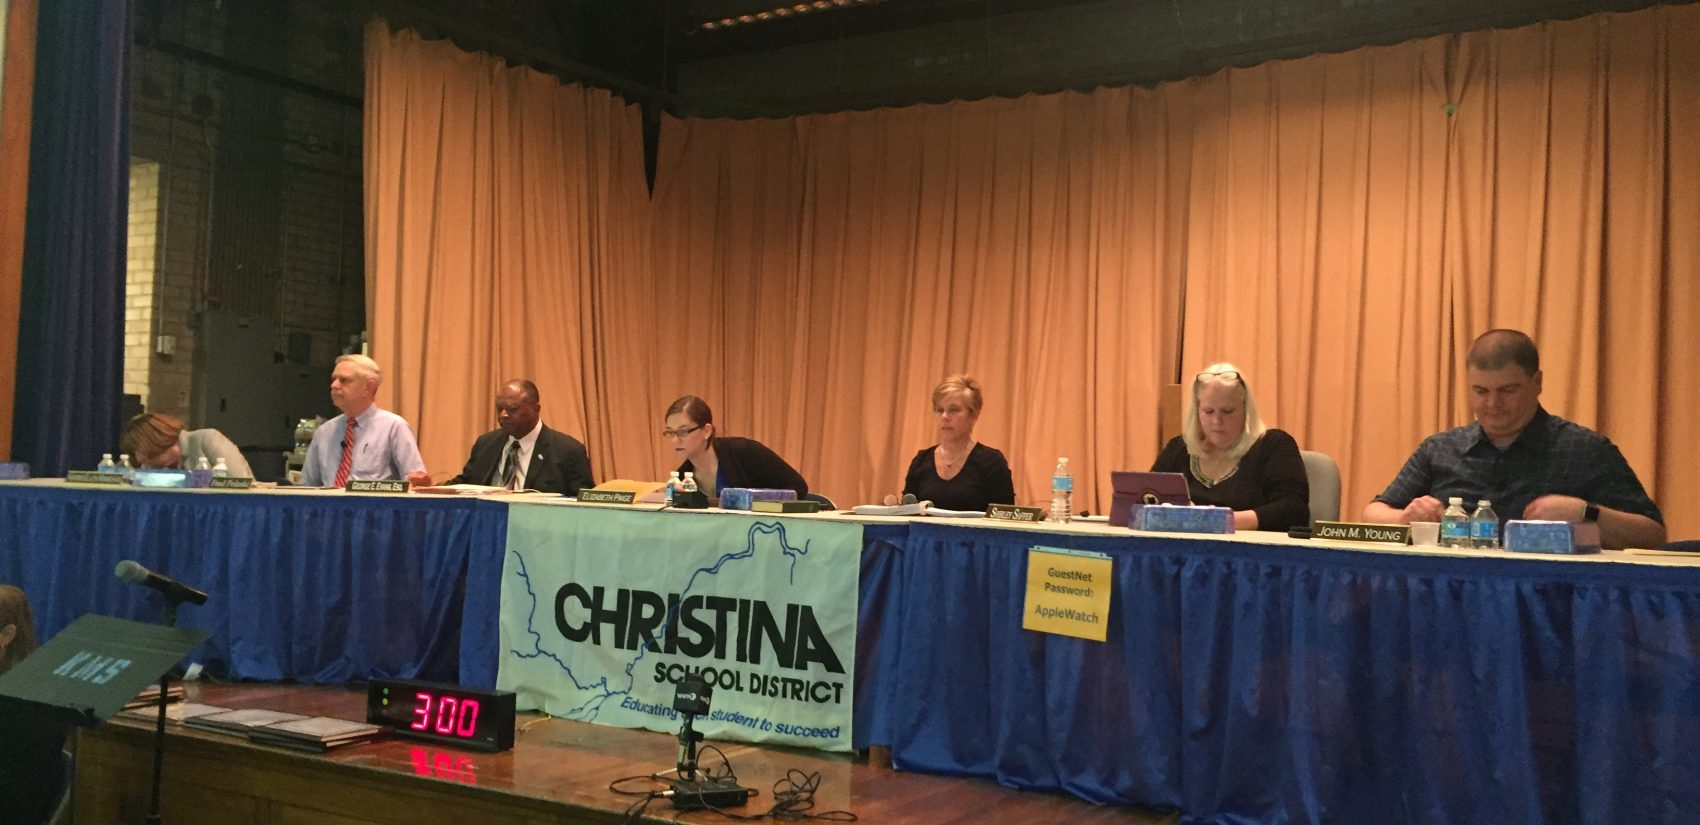 The Christina school board will have to decide what to do about several schools that are far below capacity once the district's analysis is completed. (Cris Barrish/WHYY)